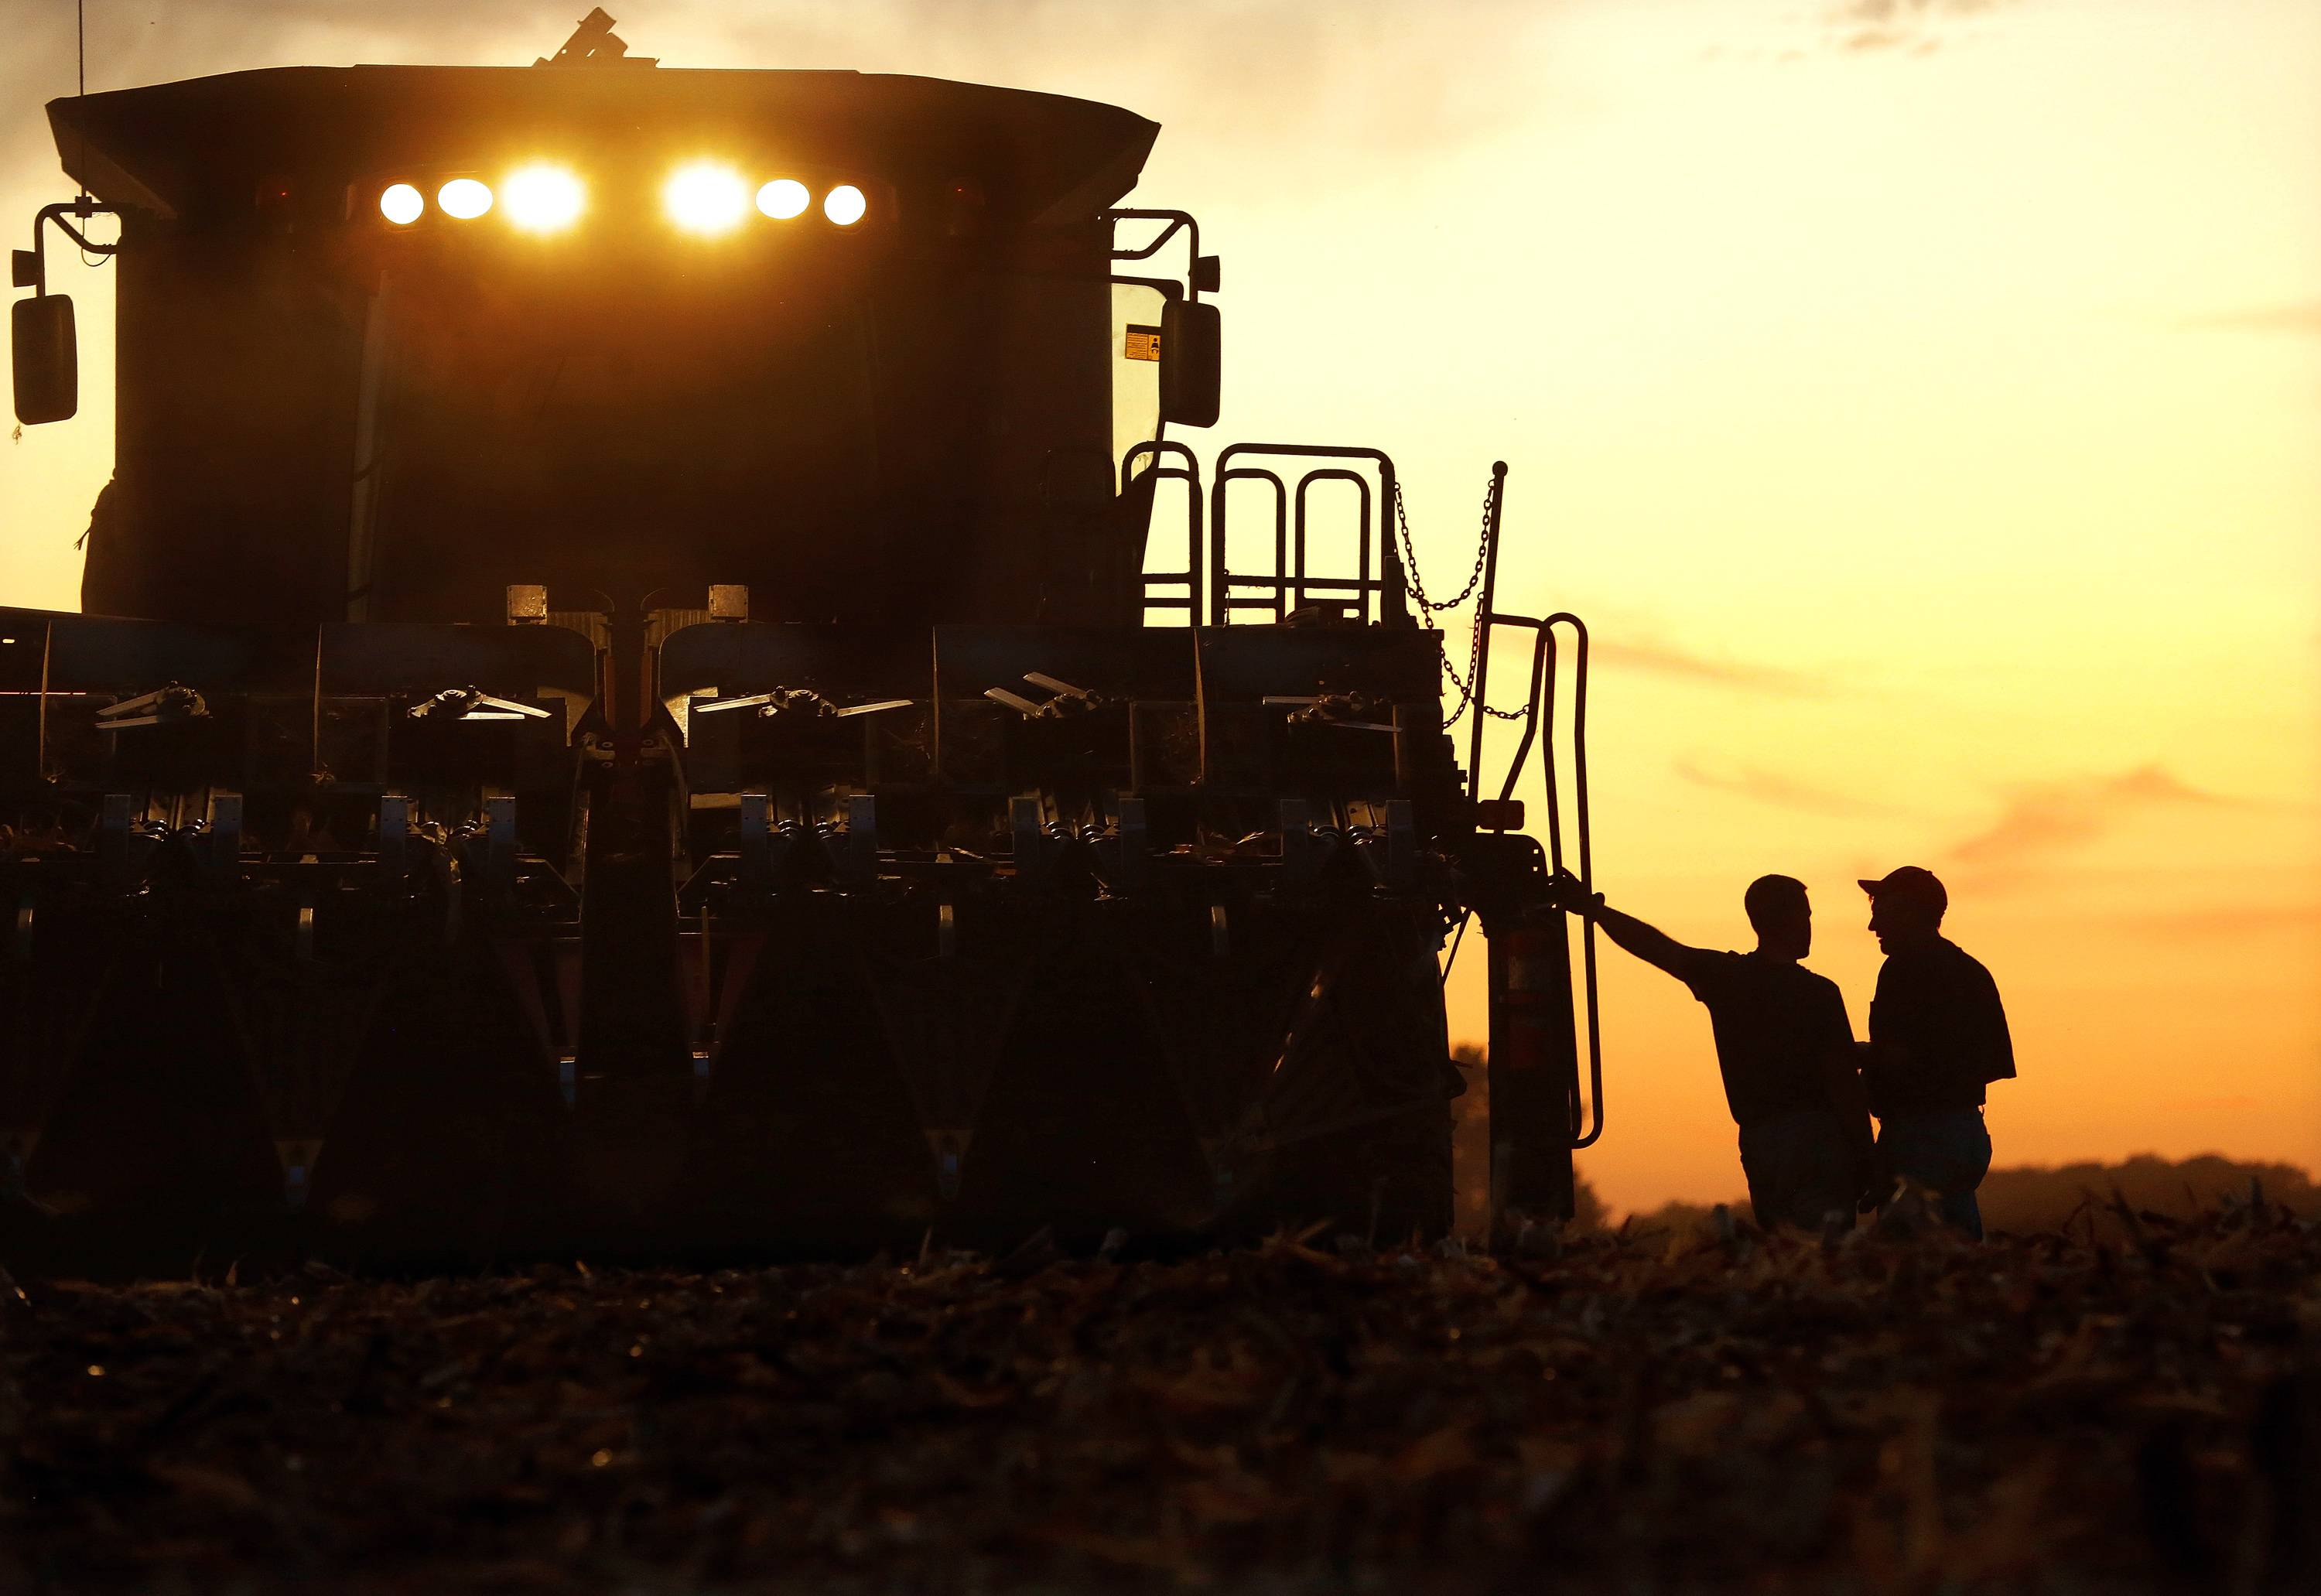 Central Illinois corn farmers are silhouetted against the setting sun while harvesting this year's crop of corn in Pleasant Plains.